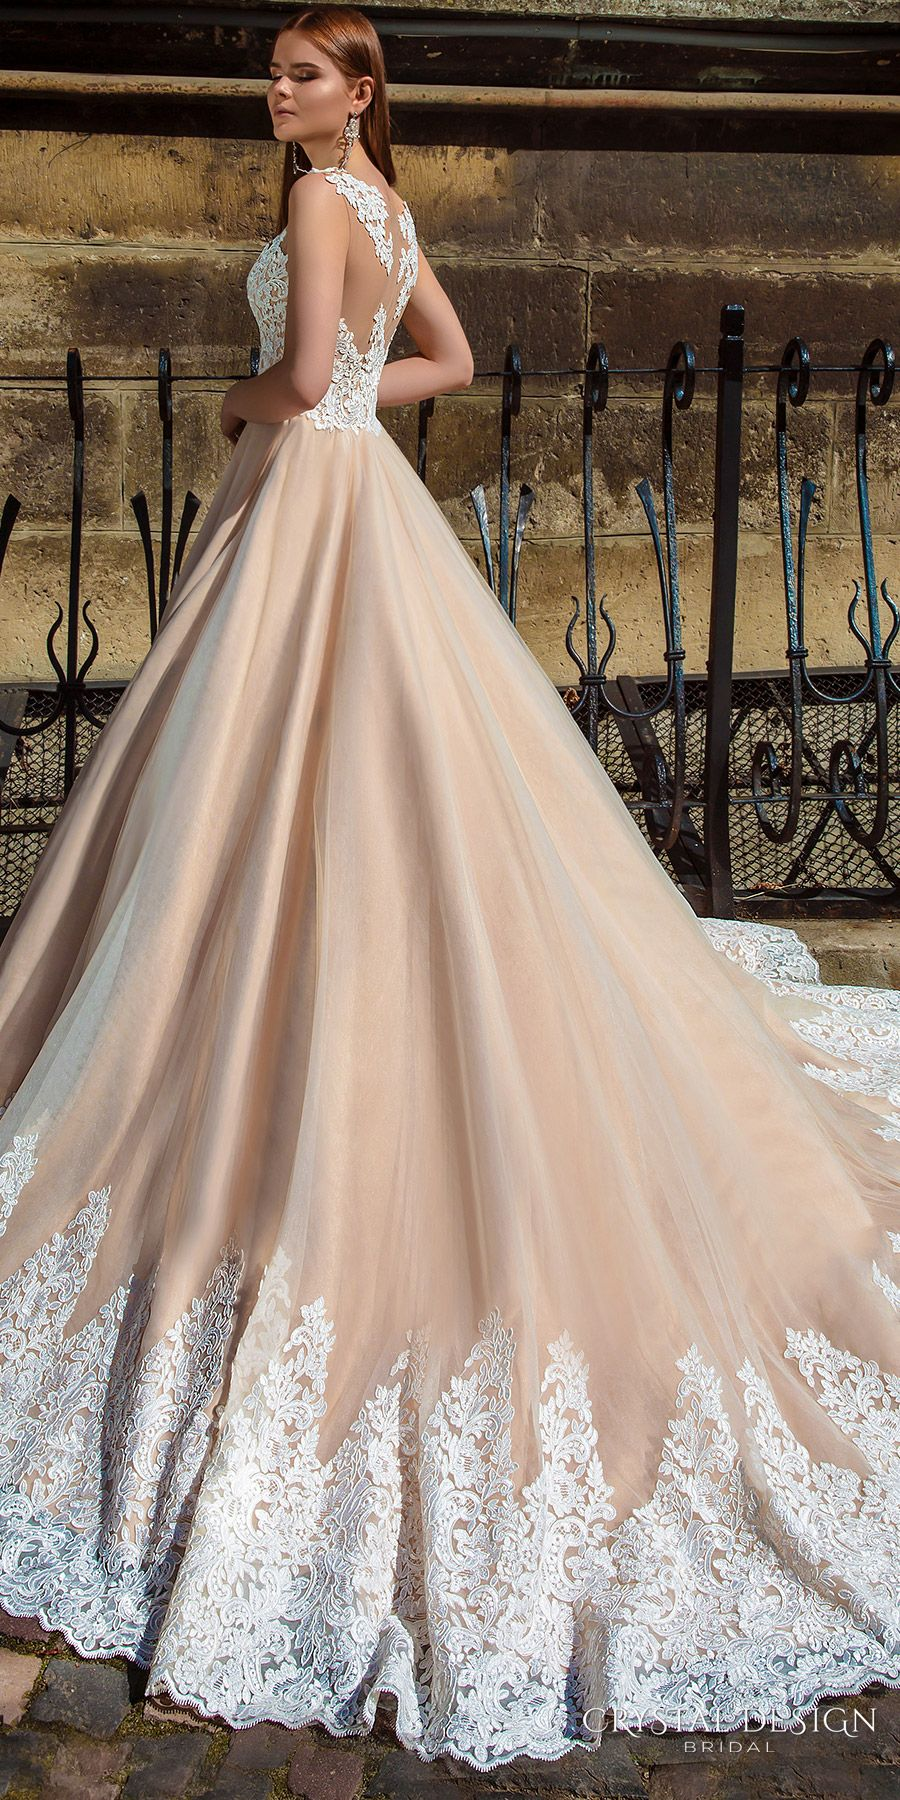 Crystal Design 2016 Wedding Dresses Wedding Inspirasi Bridal Gowns Colored Wedding Dresses Beautiful Wedding Dresses